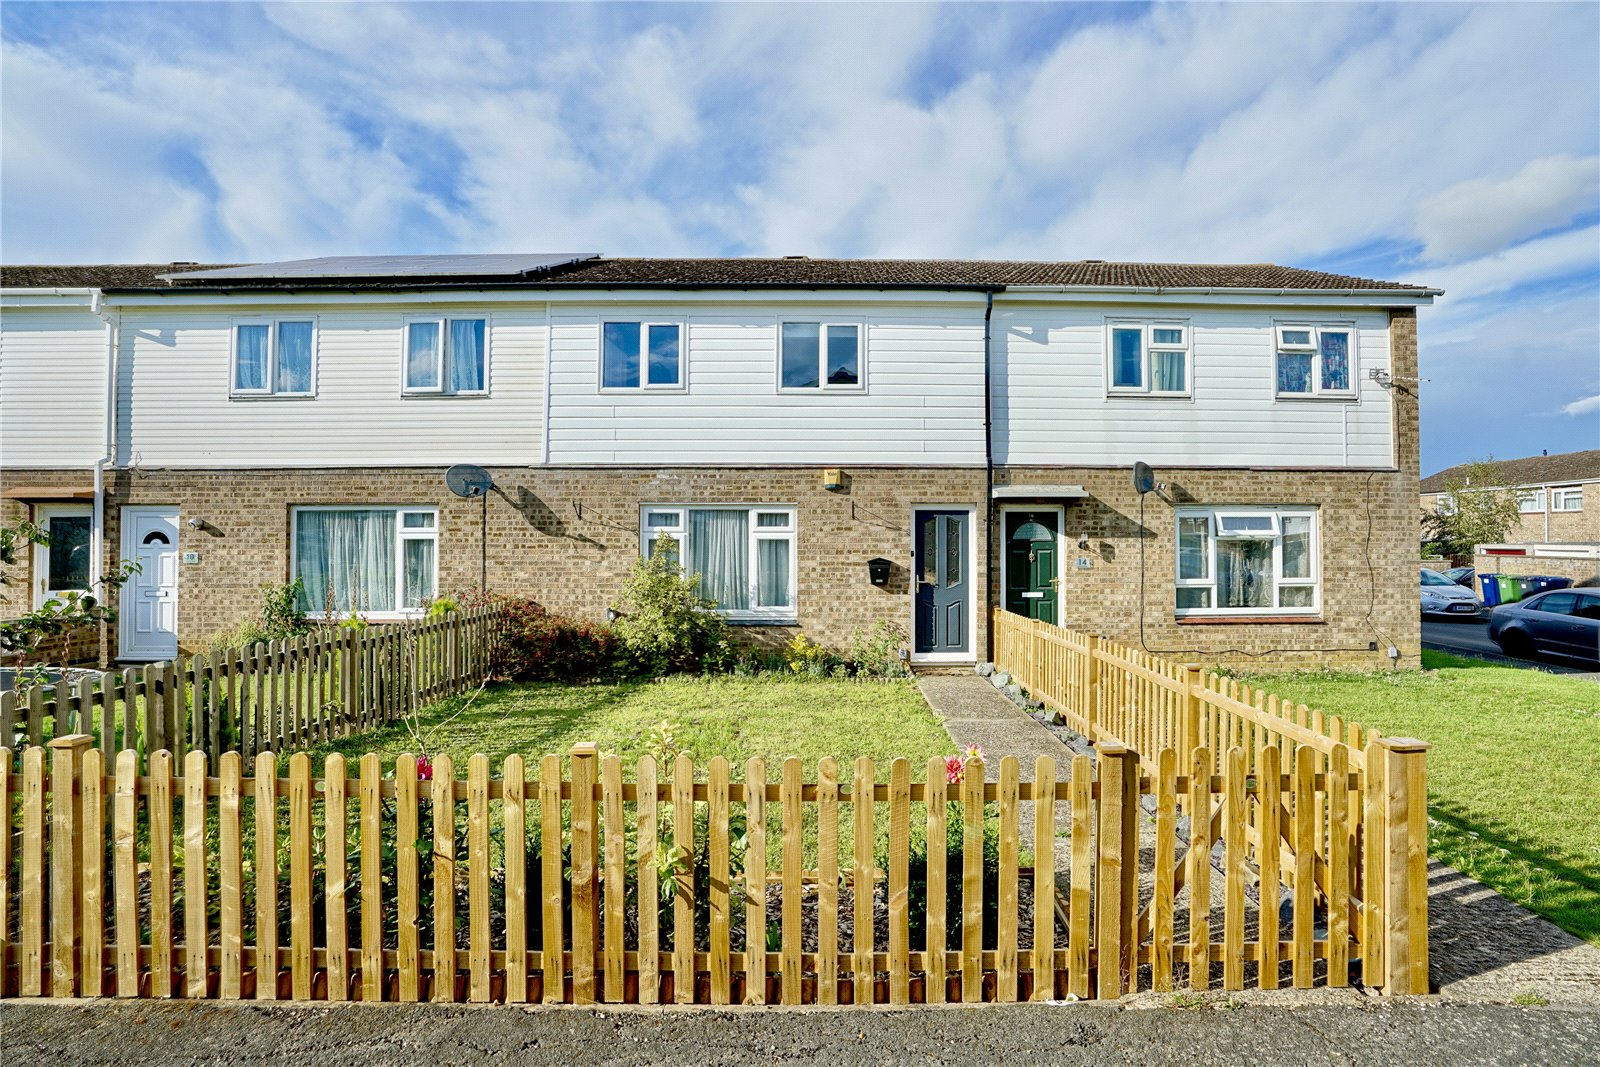 3 bed house for sale in Eaton Socon, PE19 8DH, PE19